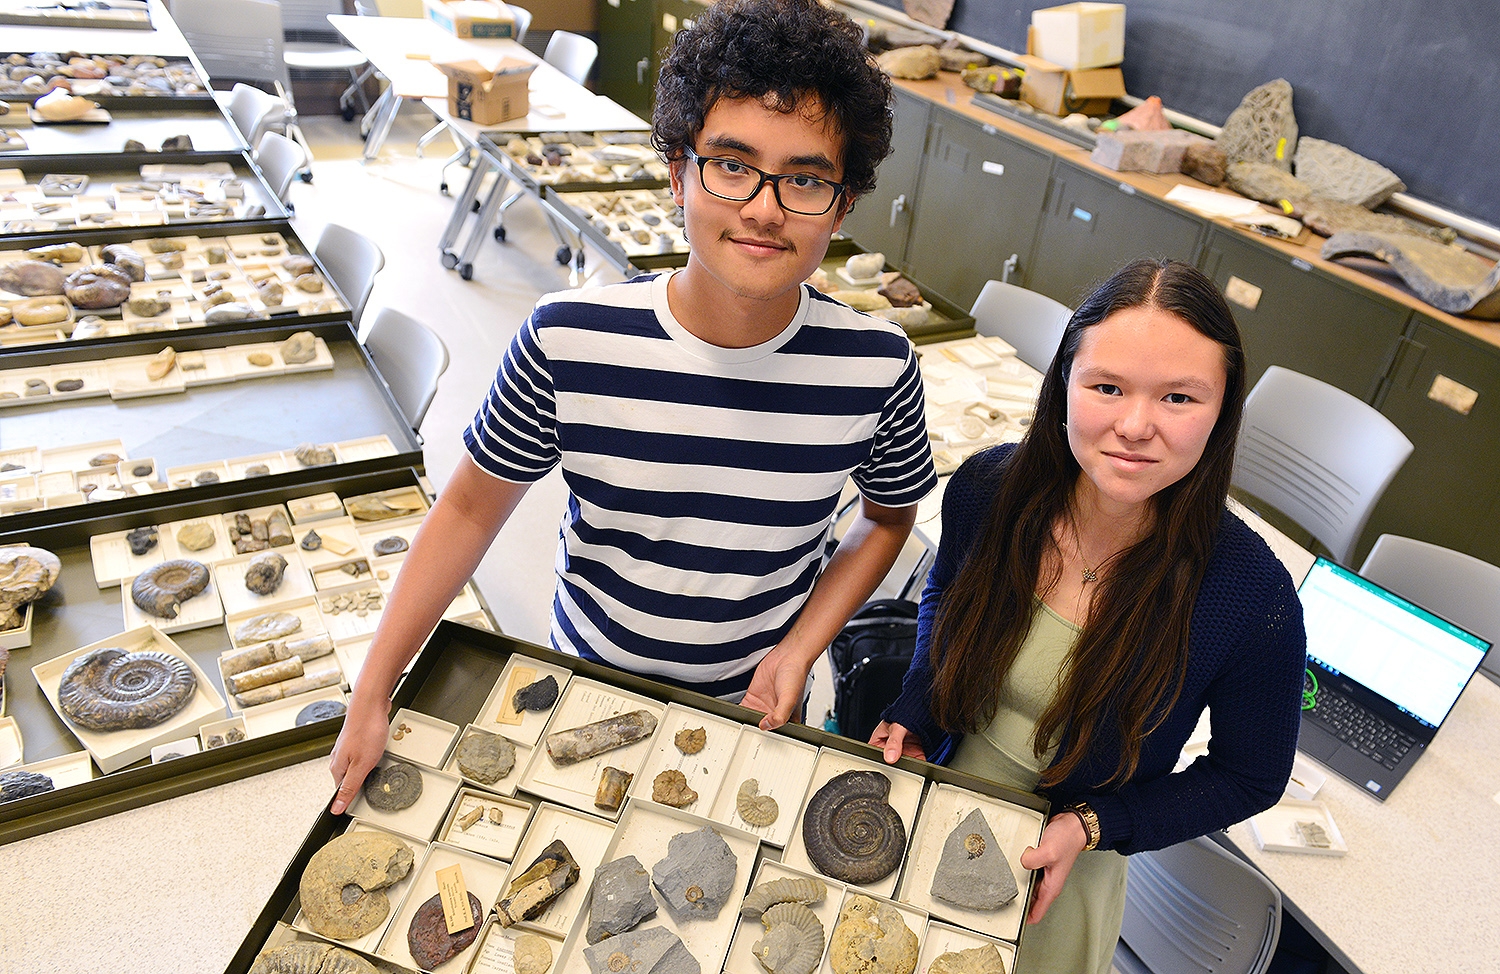 "Research fellows Sajirat ""Bright"" Palakarn '20 and graduate student Melissa McKee '17 are discovering and cataloging thousands of fossils at Exley Science Center. The fossils were once housed at the former Wesleyan Museum, a natural history museum that occupied part of the Orange Judd Hall of Natural Sciences from 1871-1957. Once the museum closed, the fossils and other objects were displaced at various locations on campus. ""We'd love to make these fossils accessible to Wesleyan students, faculty, classes and the general public,"" McKee said. (Photos by Olivia Drake)"